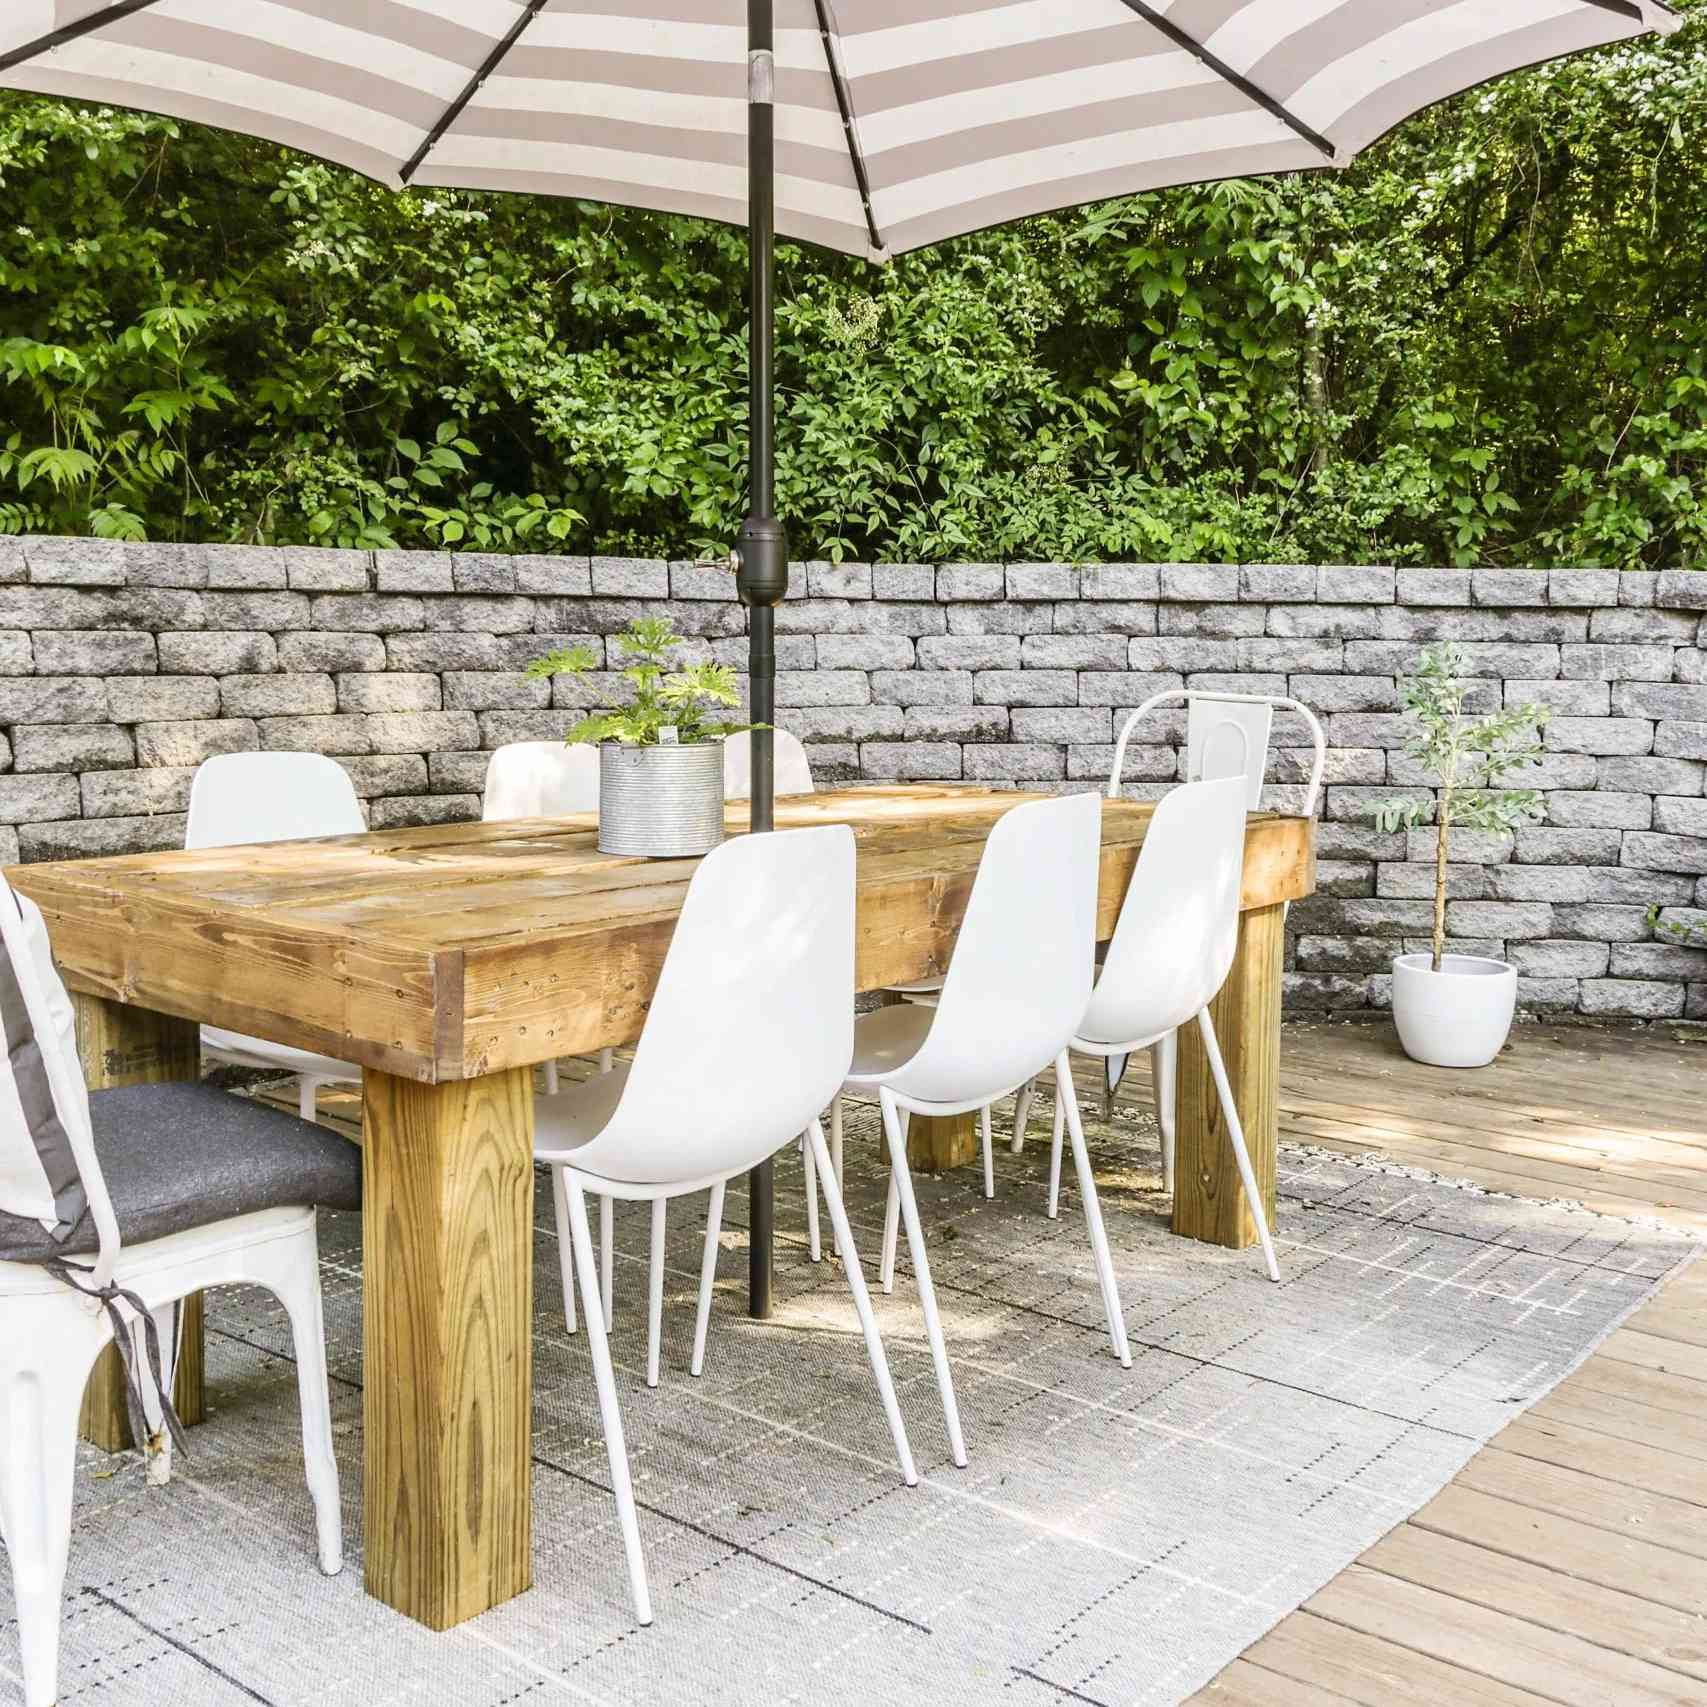 An outdoor dining table with a patio umbrella